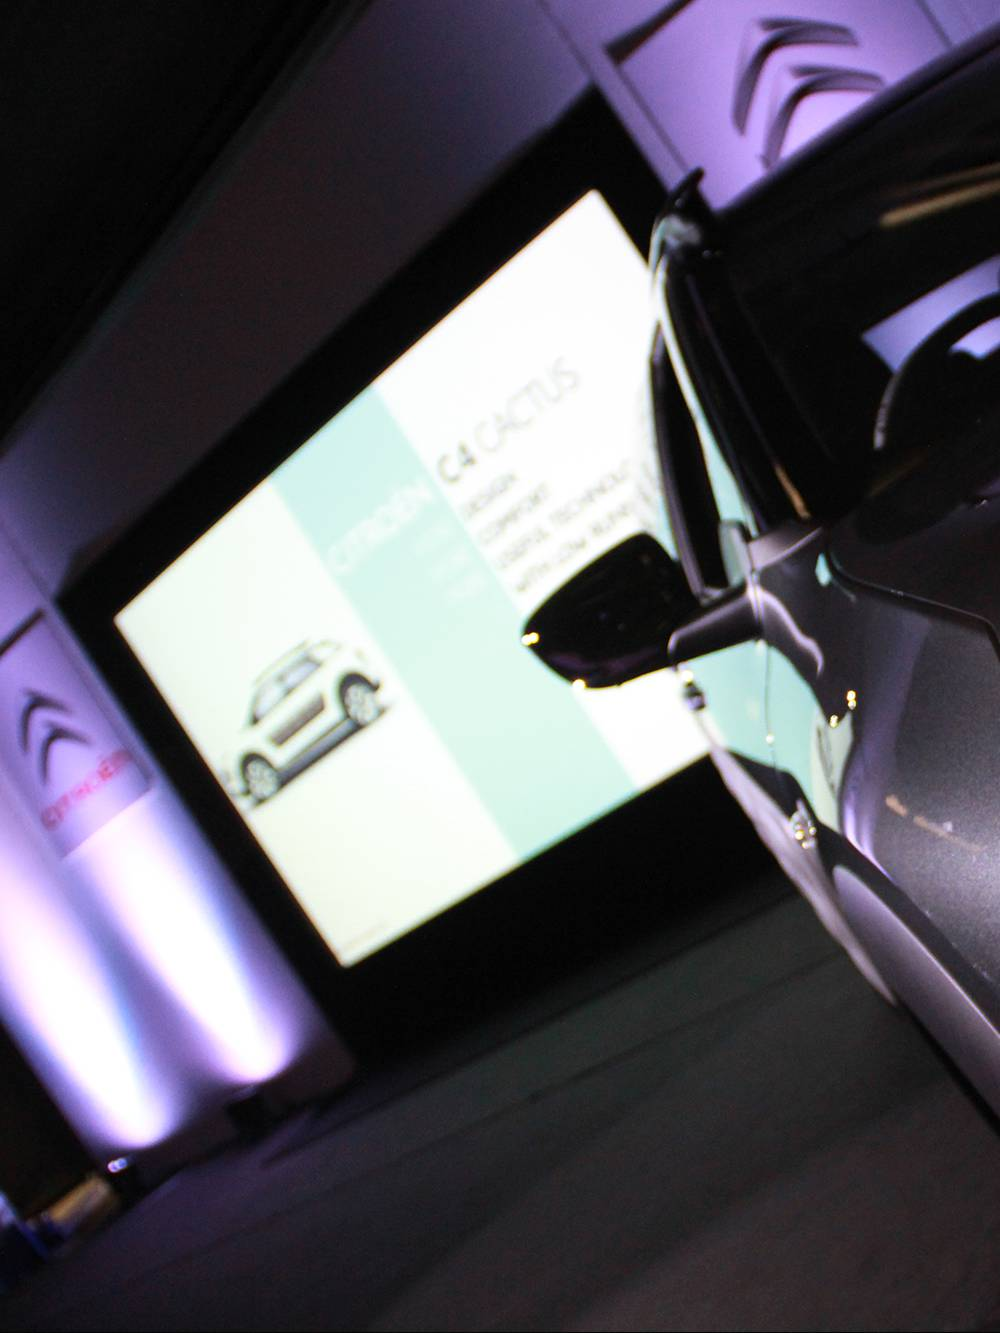 Projection audio visual and lighting hire for an exhibition near Birmingham.